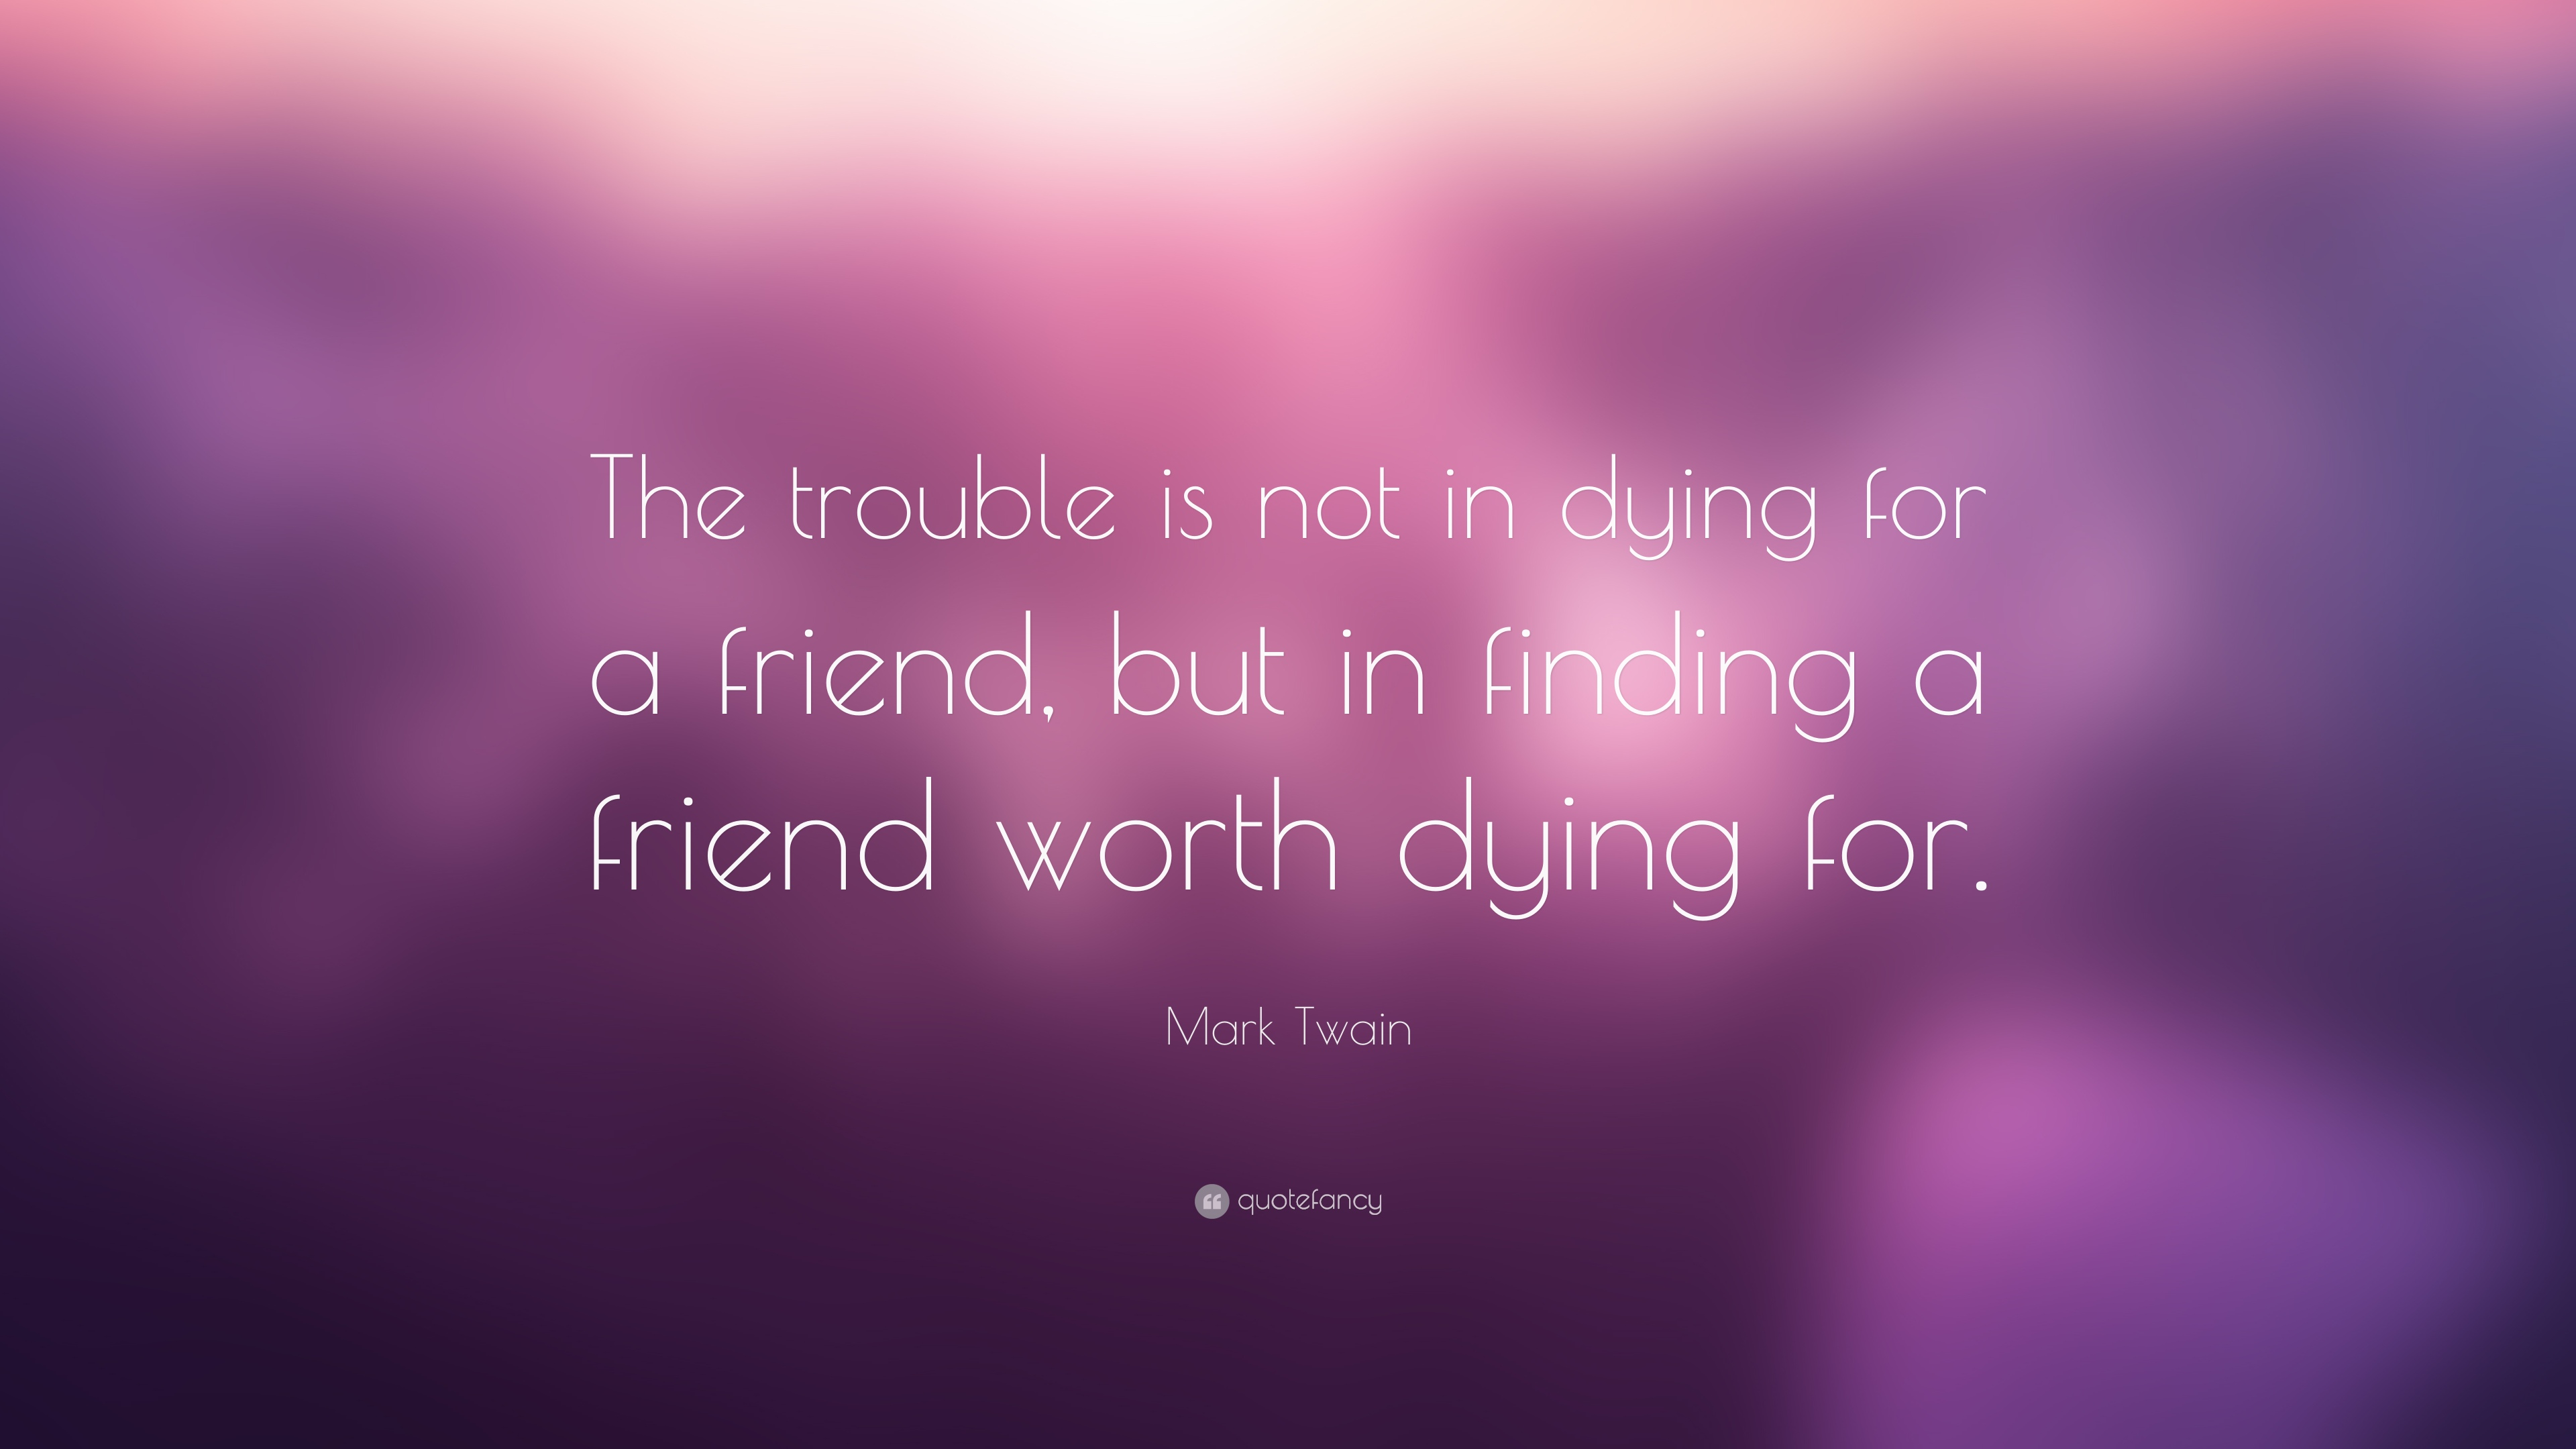 mark twain quote the trouble is not in dying for a